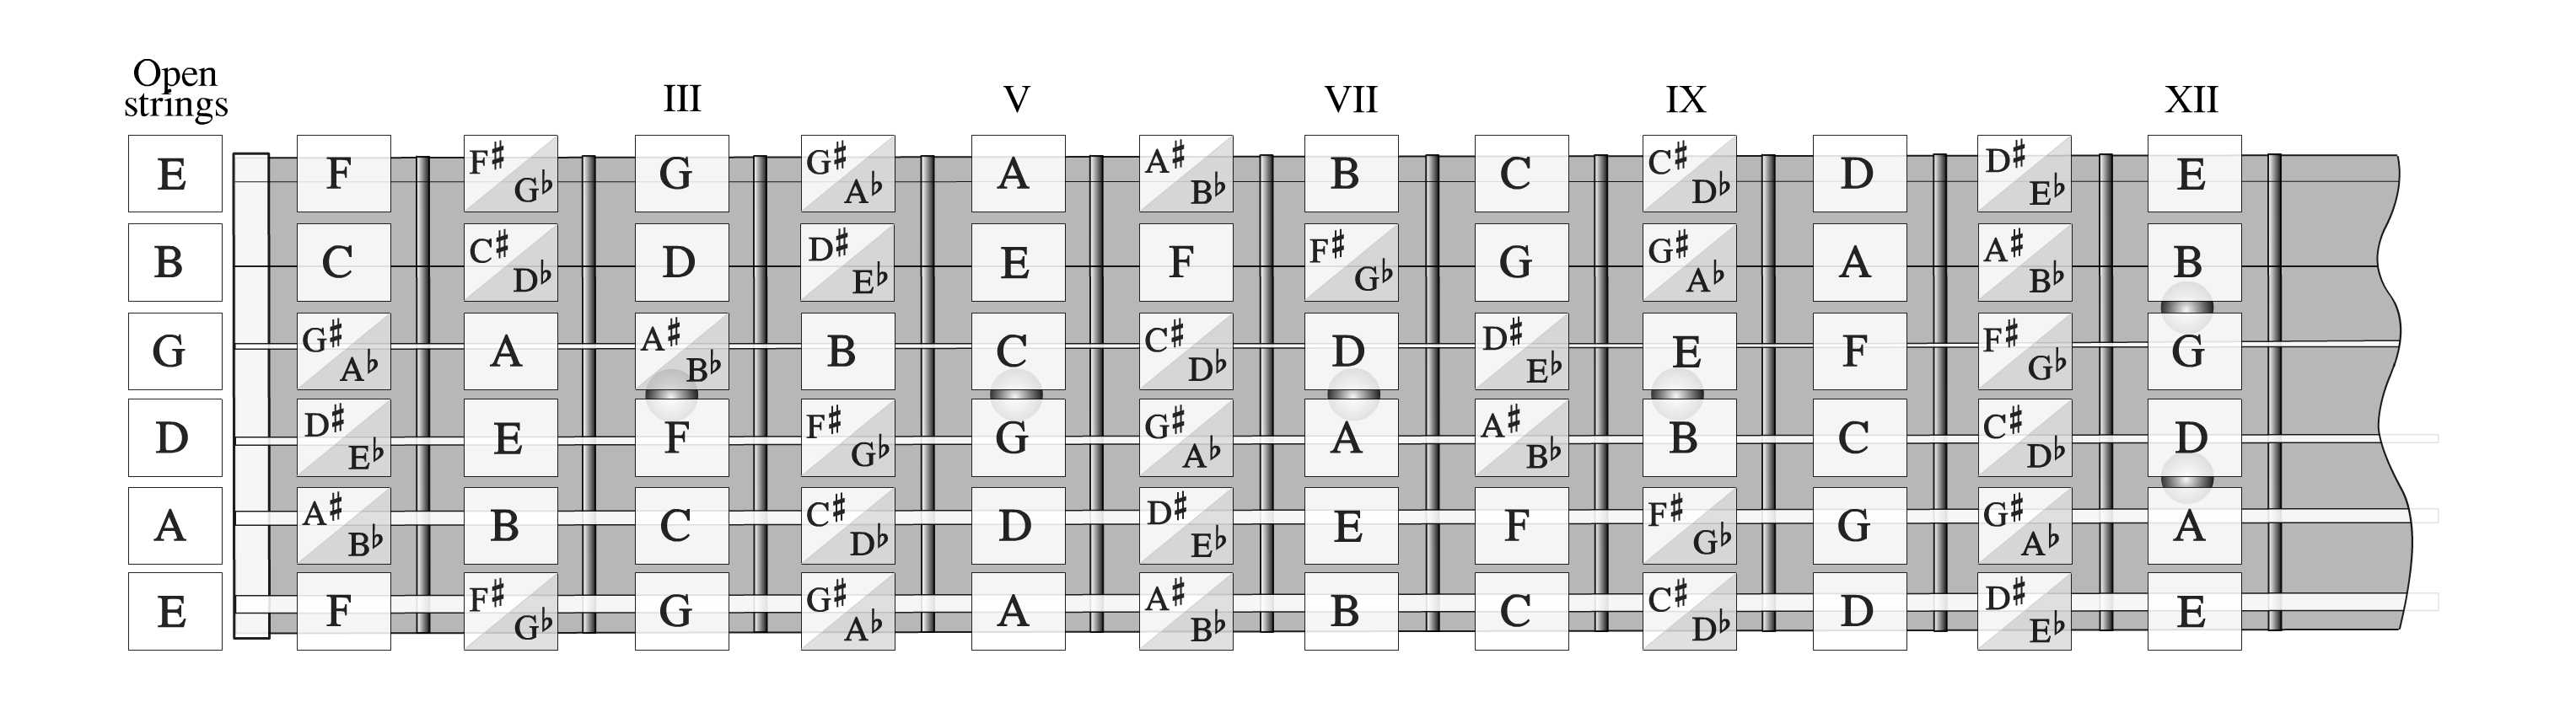 fretboard note memorisation the easy way for guitar and bass bristol guitar lessons. Black Bedroom Furniture Sets. Home Design Ideas